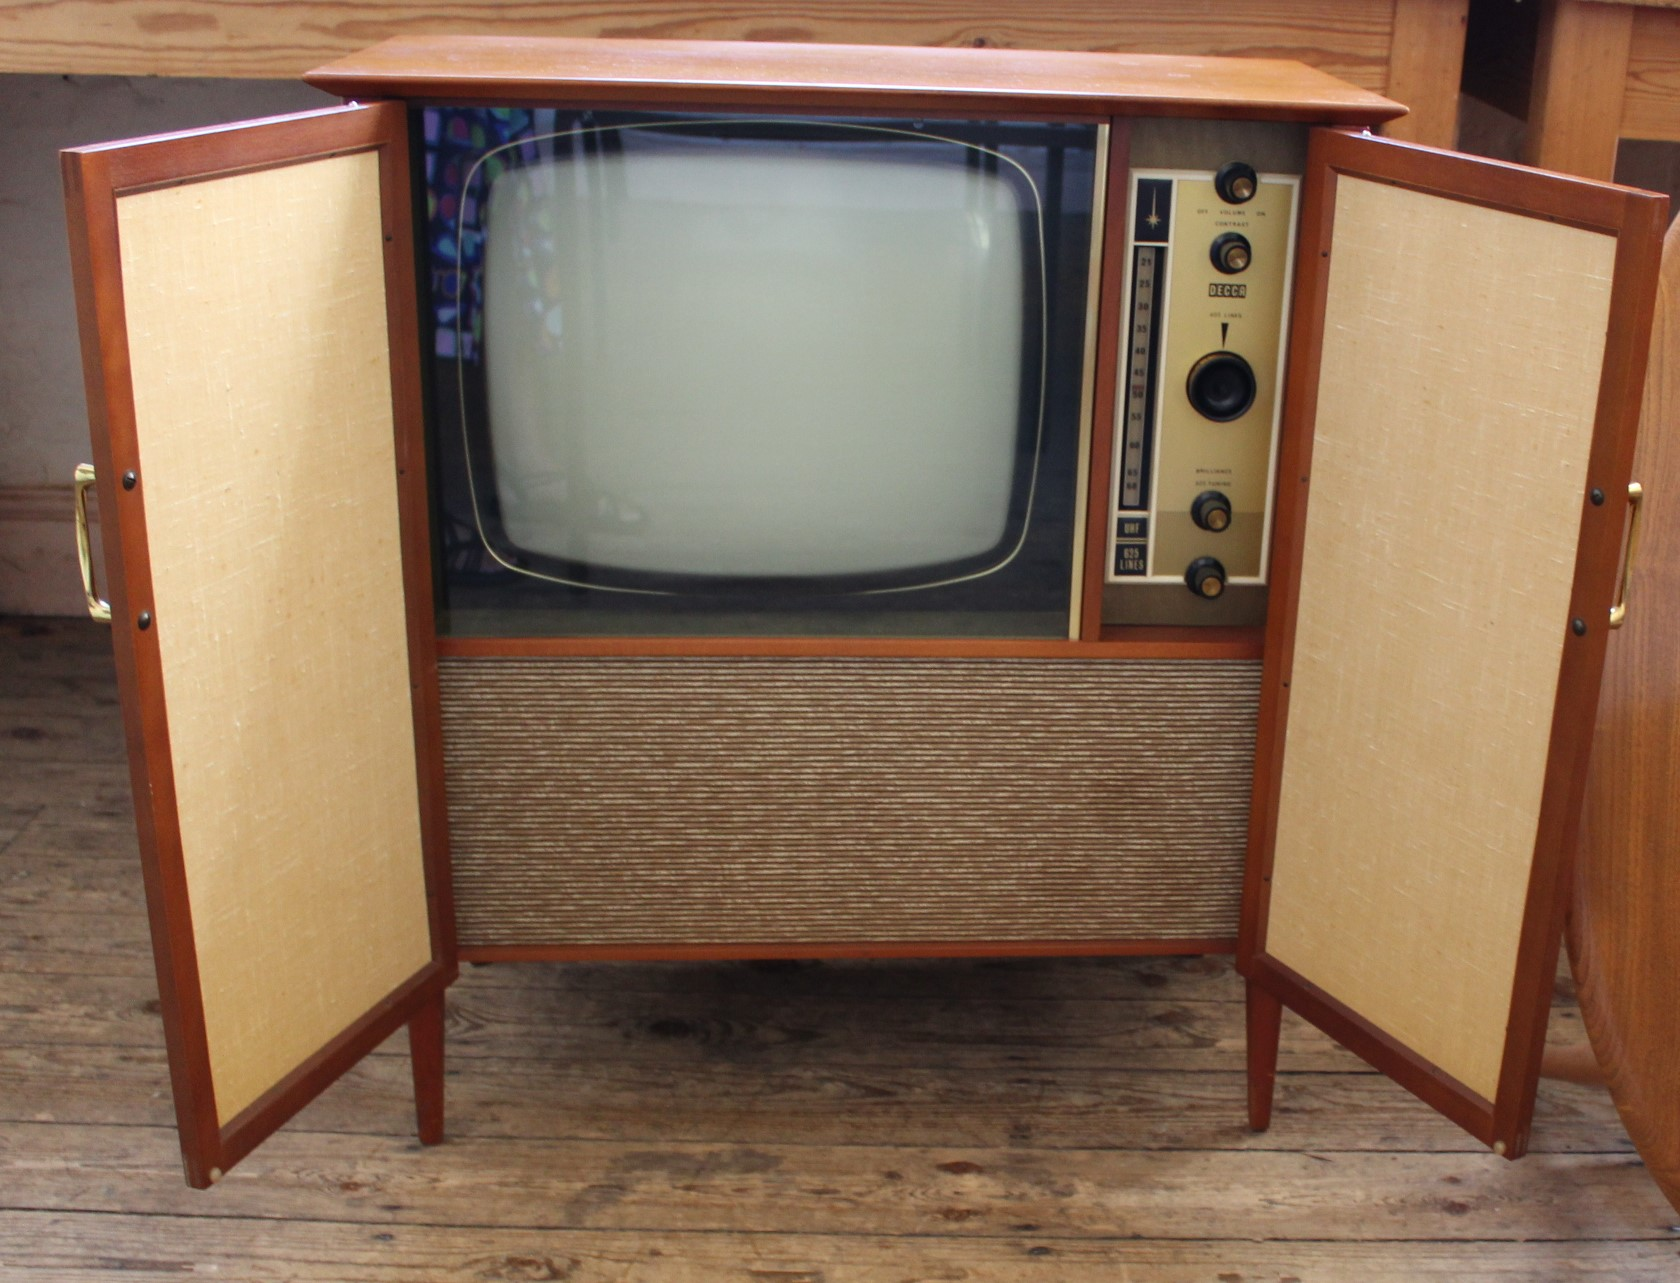 Lot 810 - A vintage Decca TV in striking stylish cabinet.